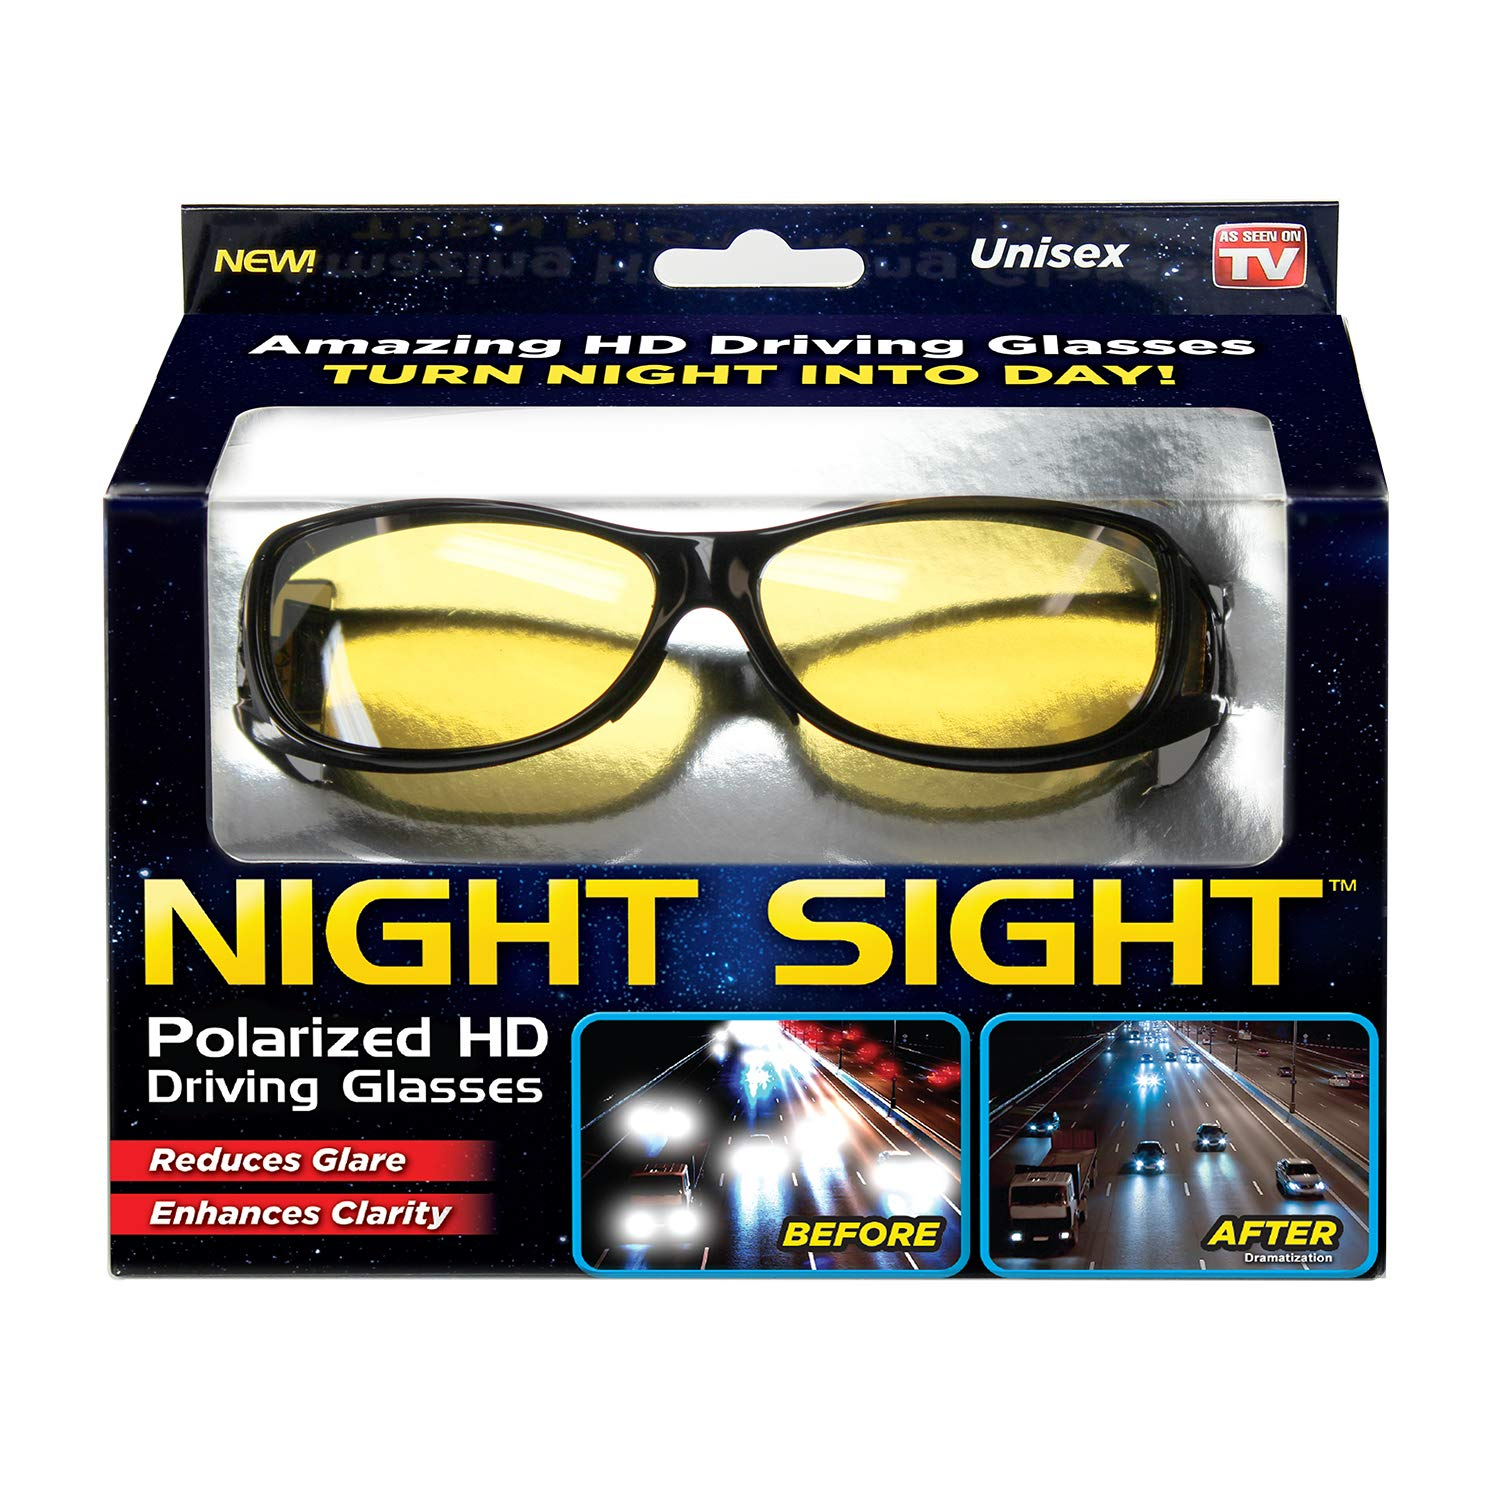 Ontel Night Sight, Hd Polarized Night Vision Driving Sunglasses, Men & Women, Anti Glare, as Seen On Tv